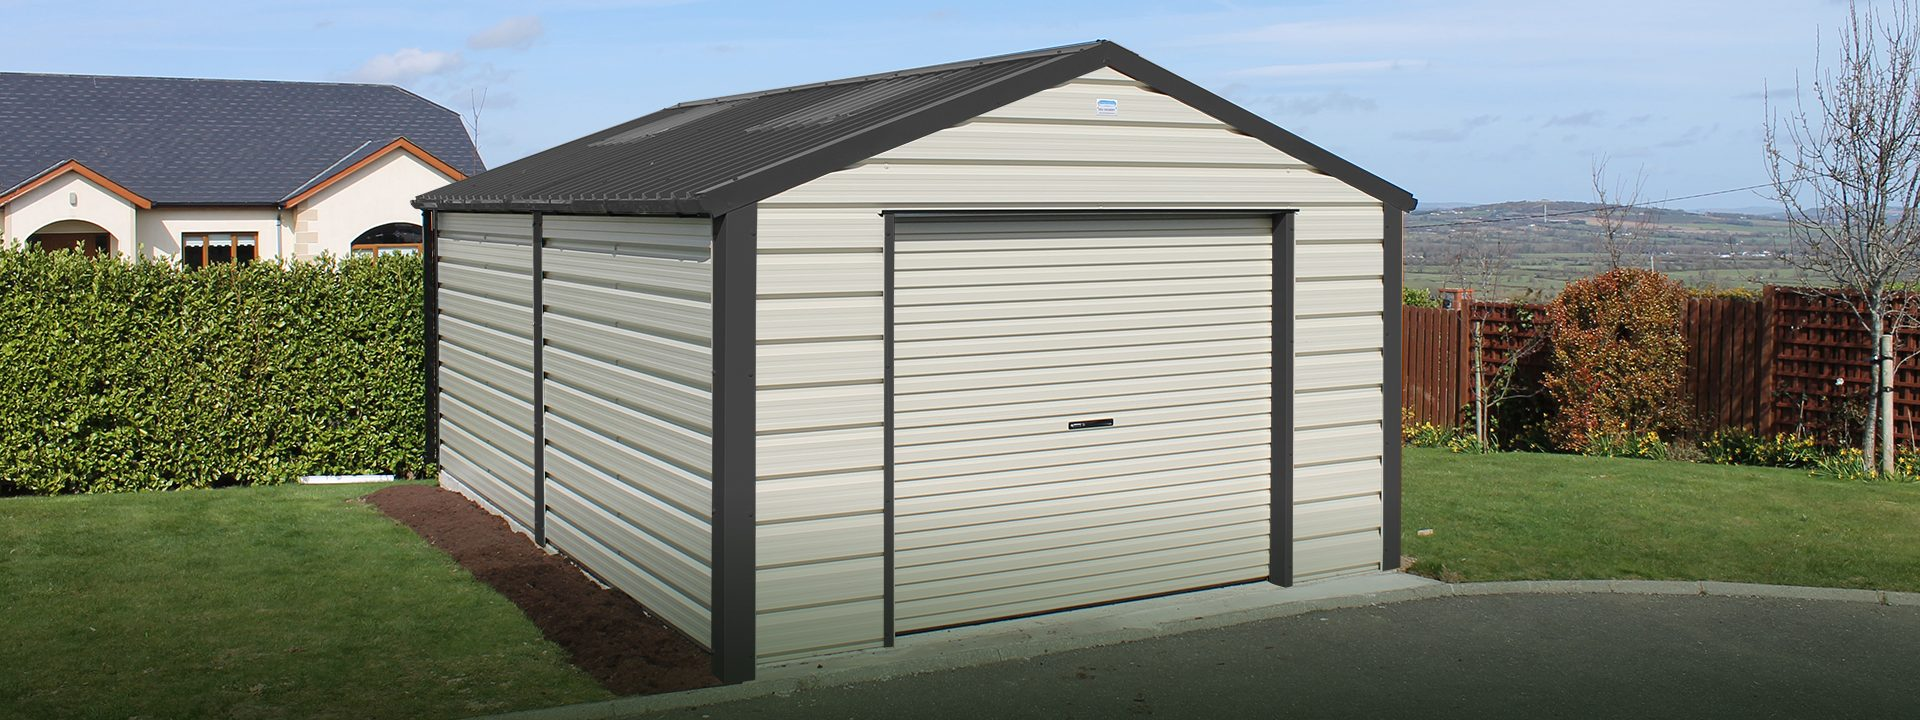 in furniture steel design with decorating inspiration remodel australia great about fabulous home modern sheds designing